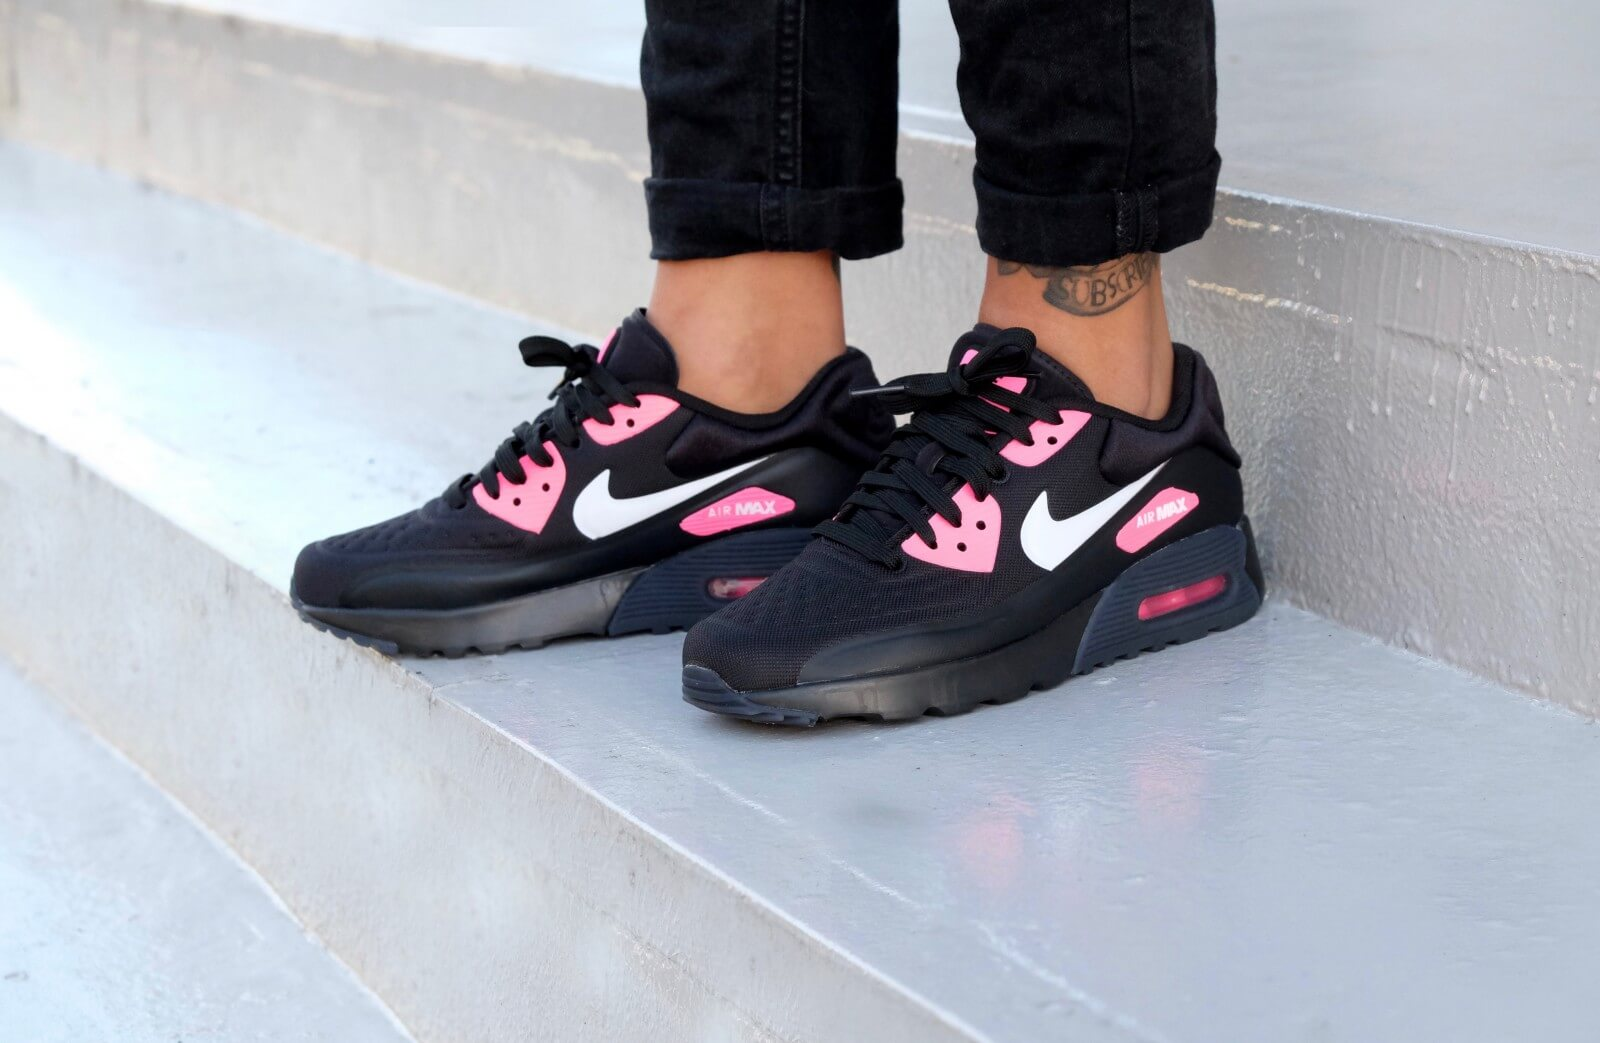 new concept 53451 94c3f nike wmns air max 90 ultra special edition gs black white hyper pink